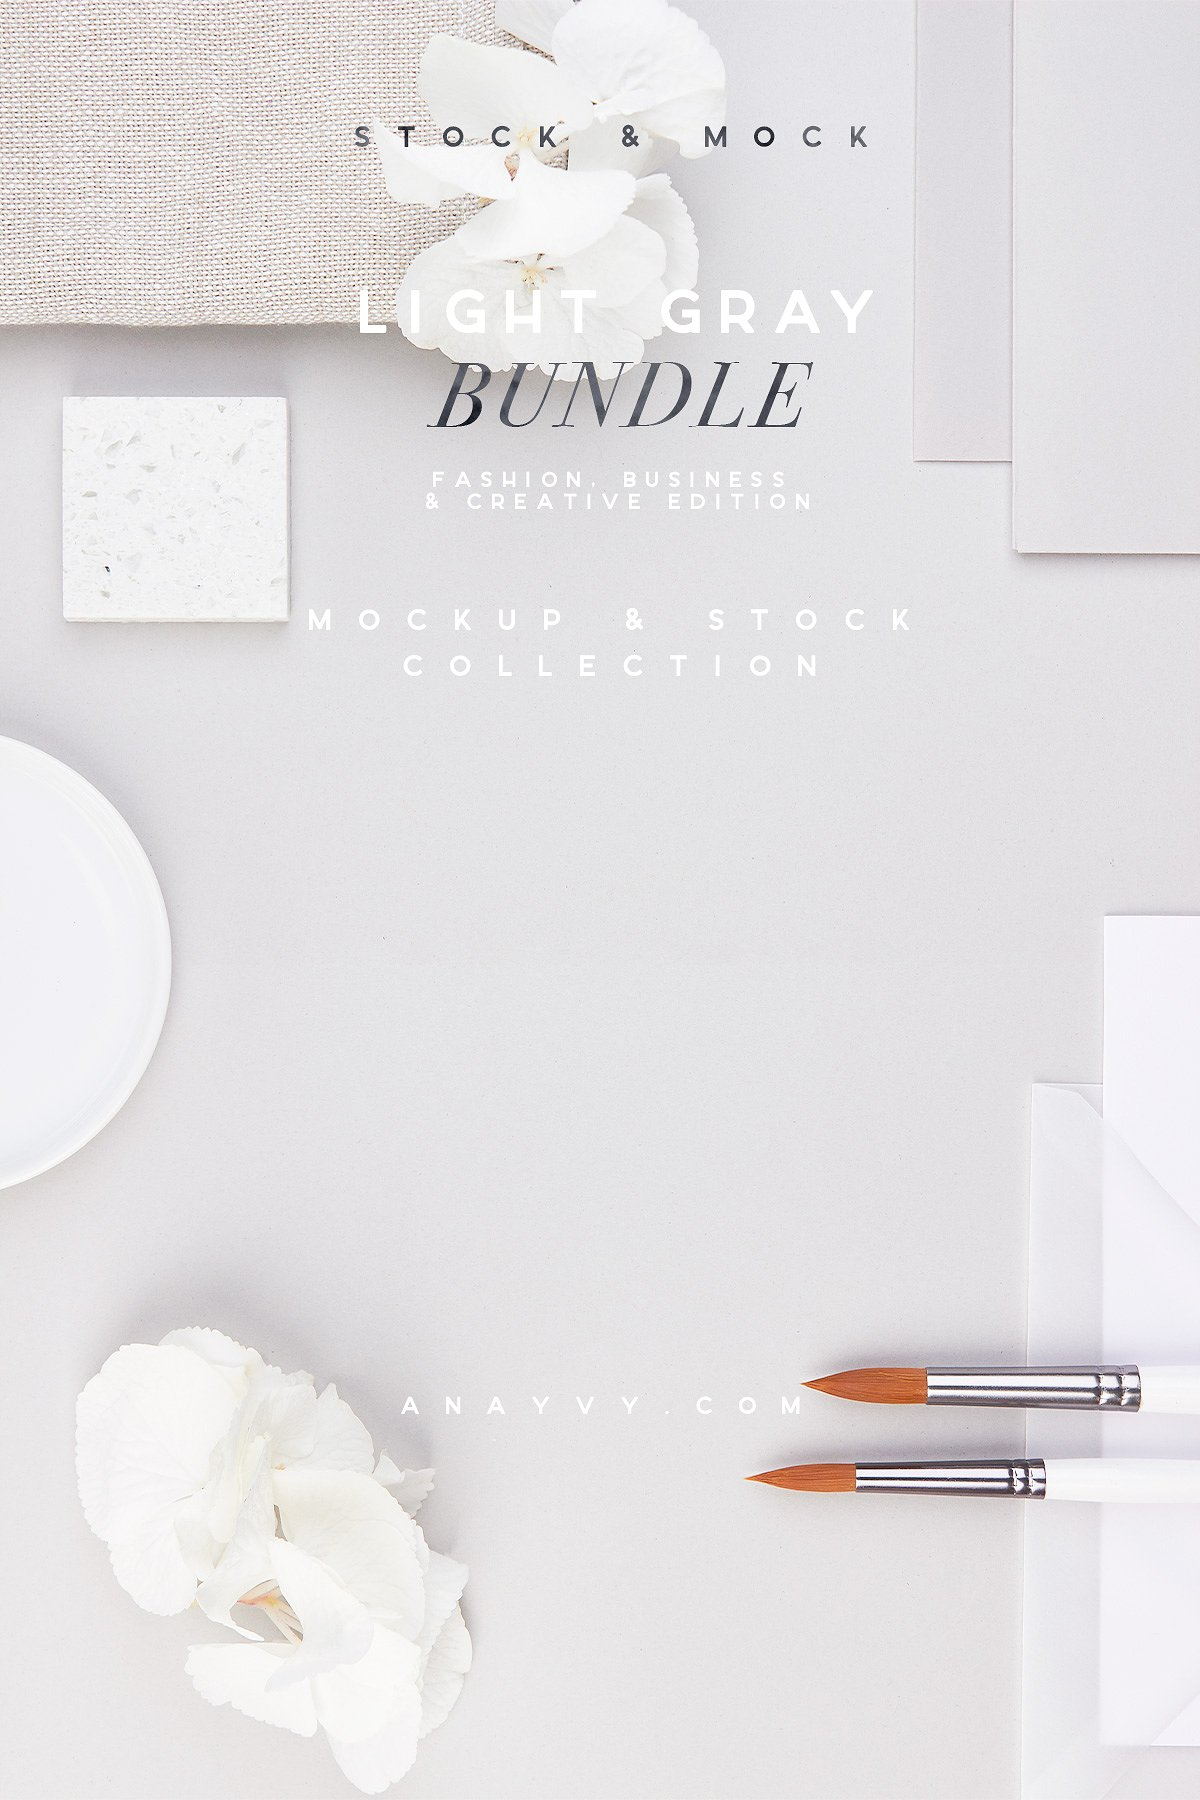 0-bundle-stock-image-mockup-collection-social-media-fashion-blogger-light-grey-sophisticated-white-silver-